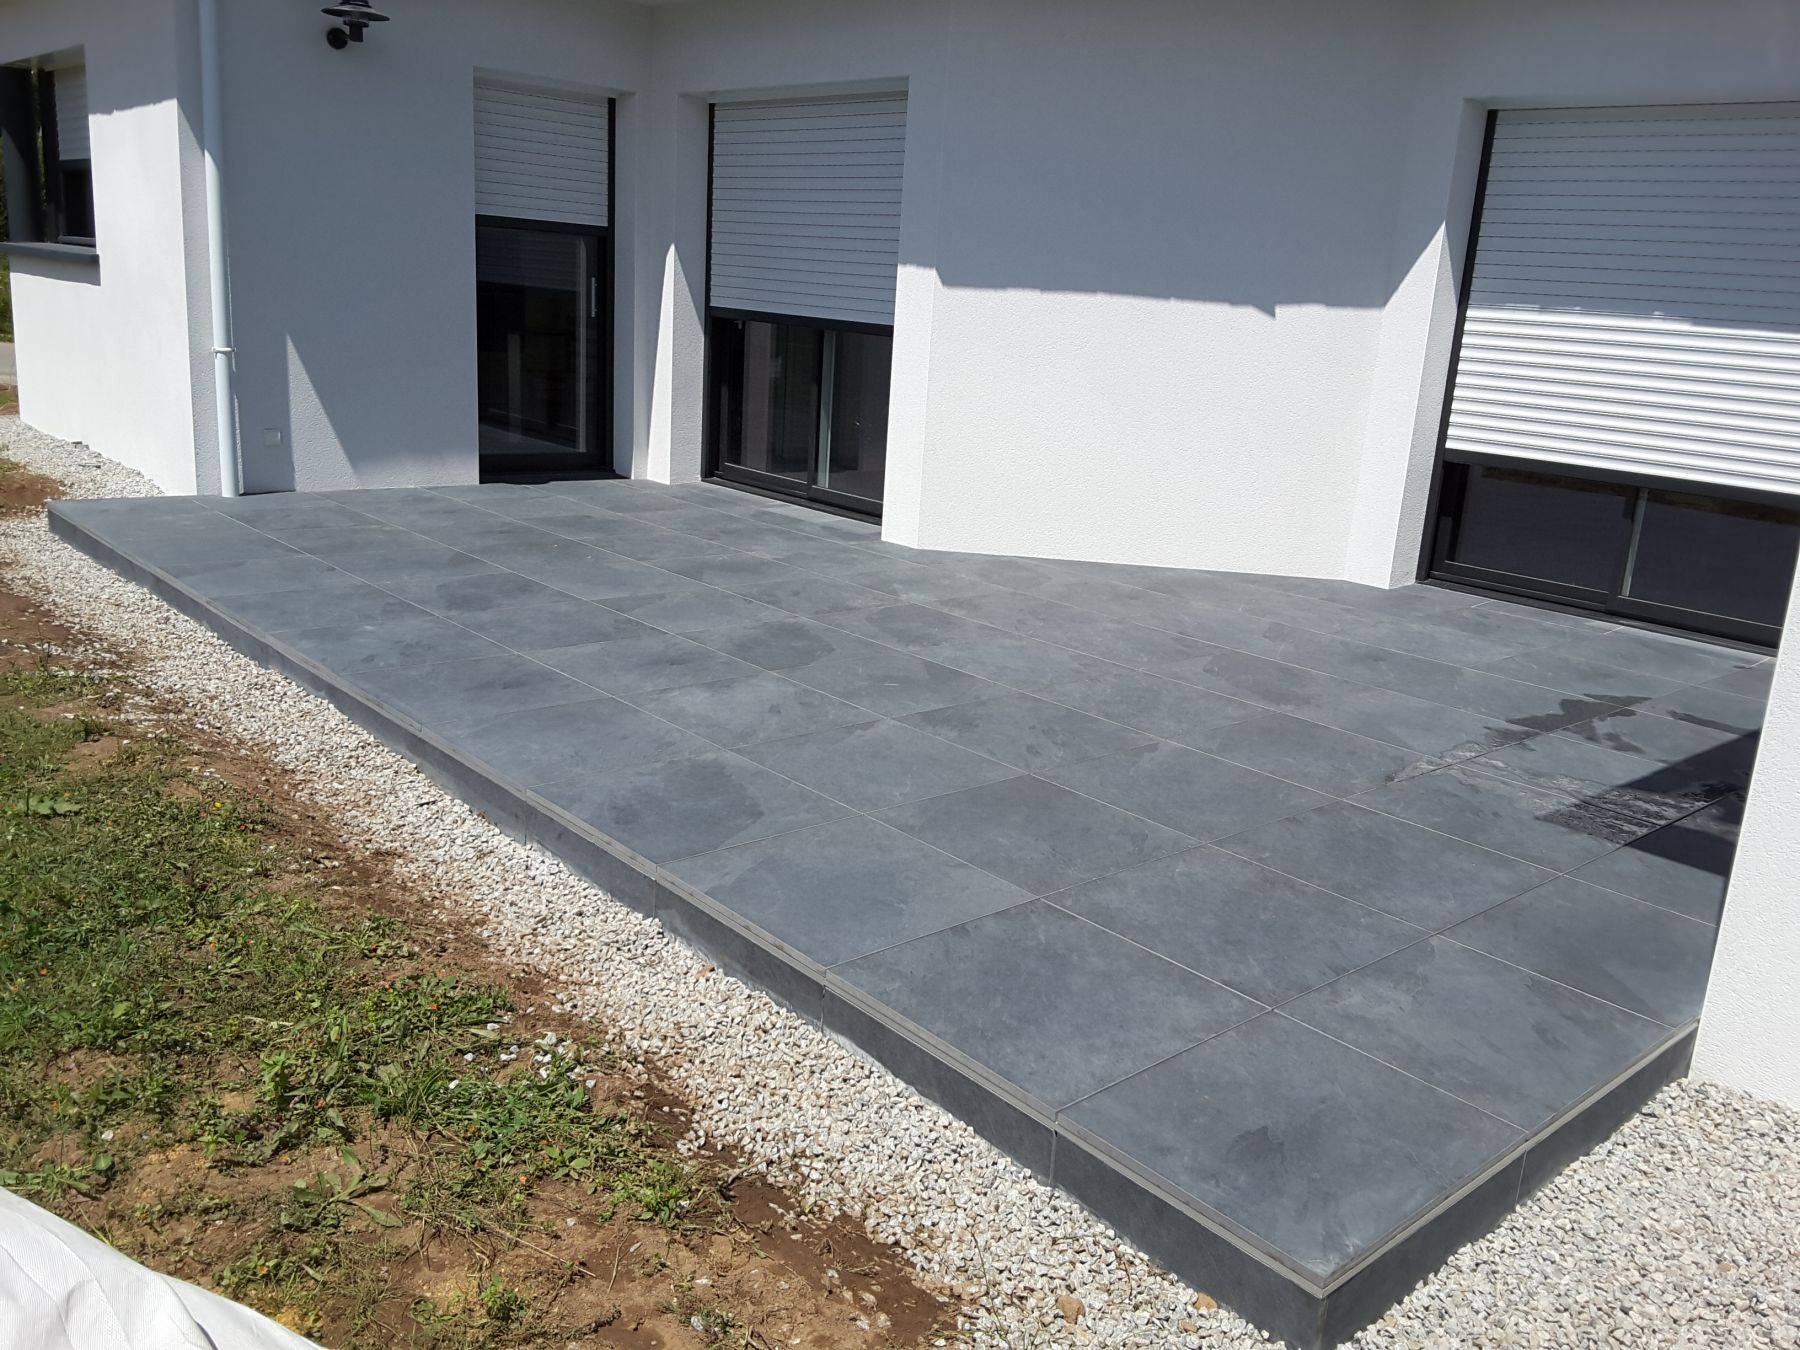 Carrelage design carrelage sur plot moderne design for Carrelage sur sable